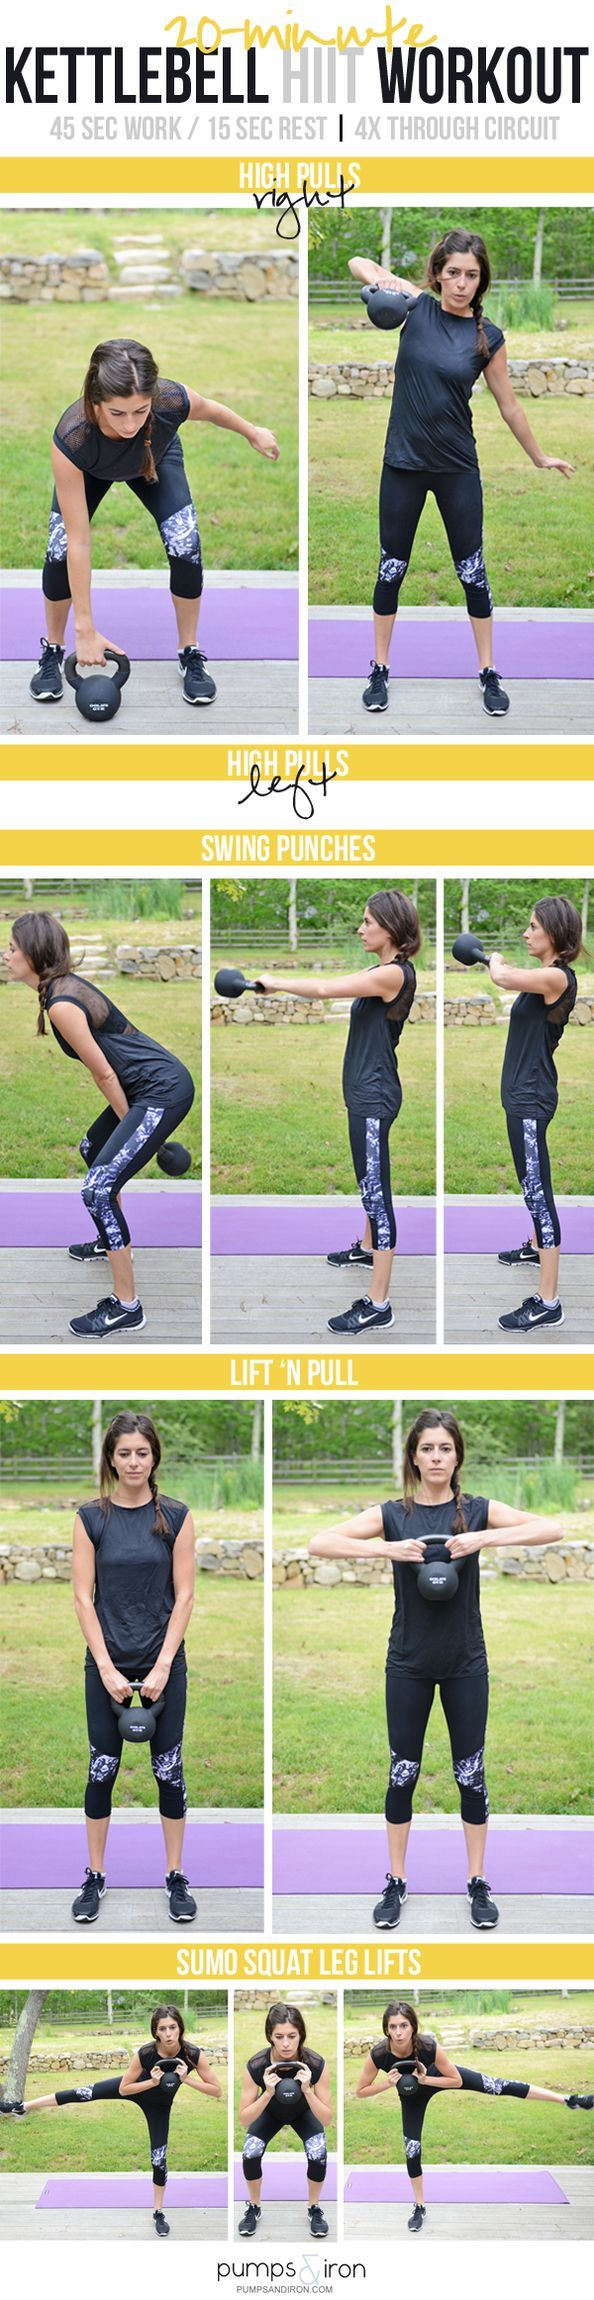 Kettlebell HIIT Workout with Resistance Band Warm Up